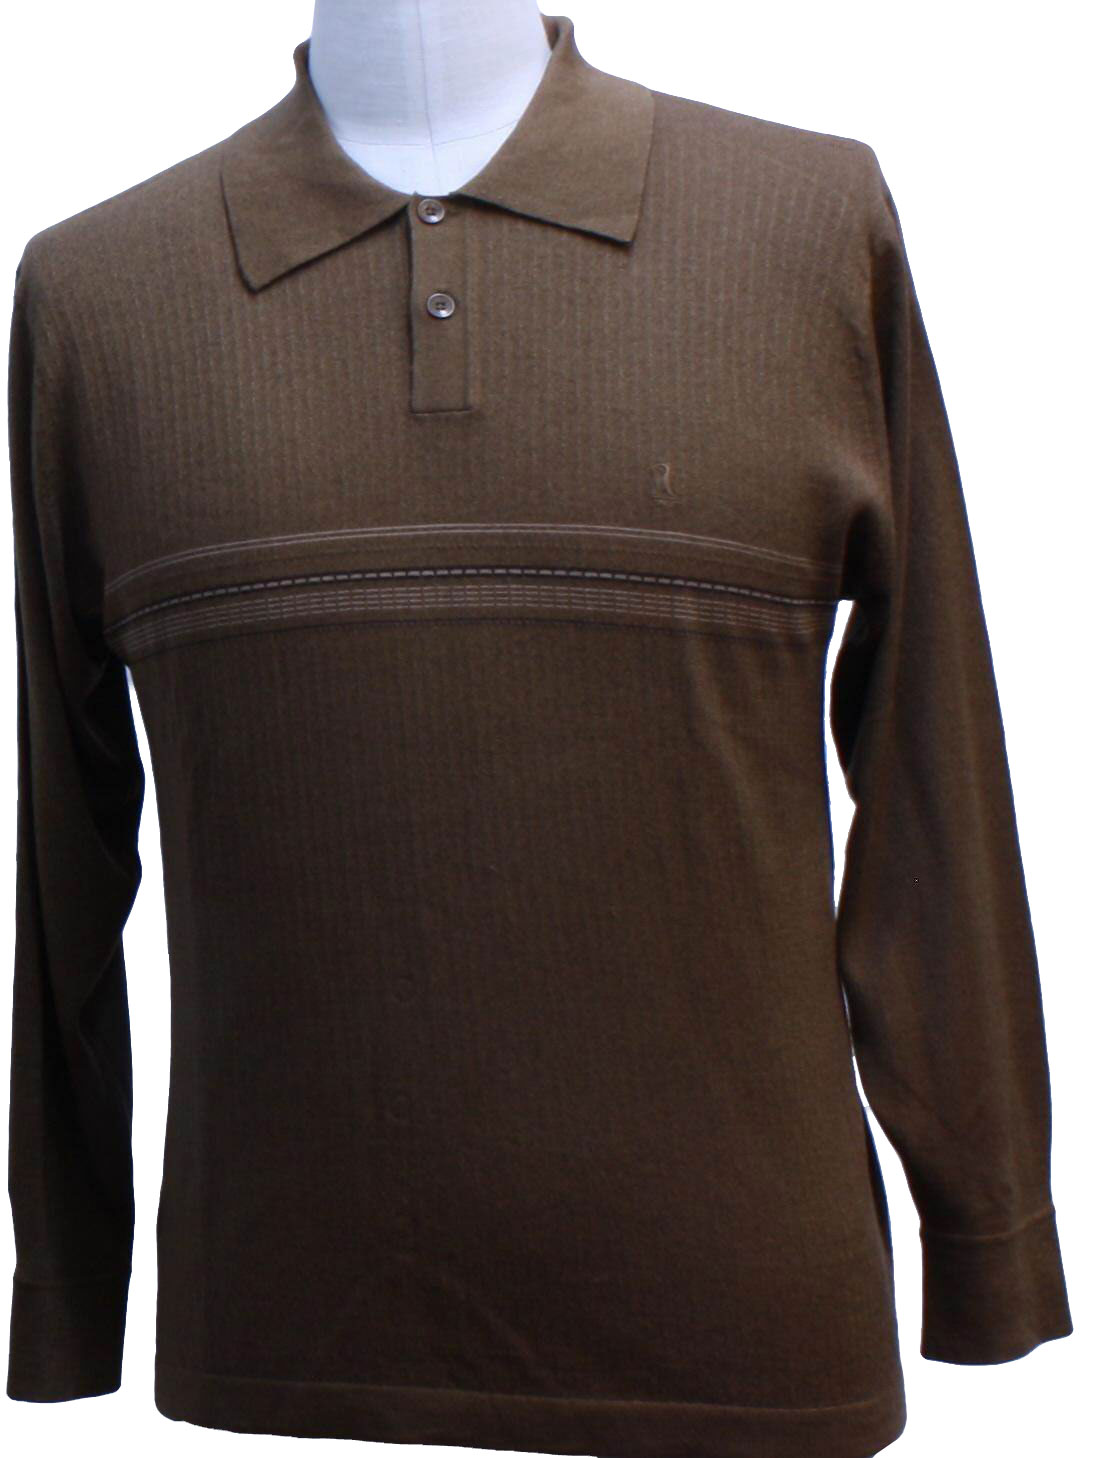 1990 39 s knit shirt missing label 90s missing label for Mens chocolate brown shirt